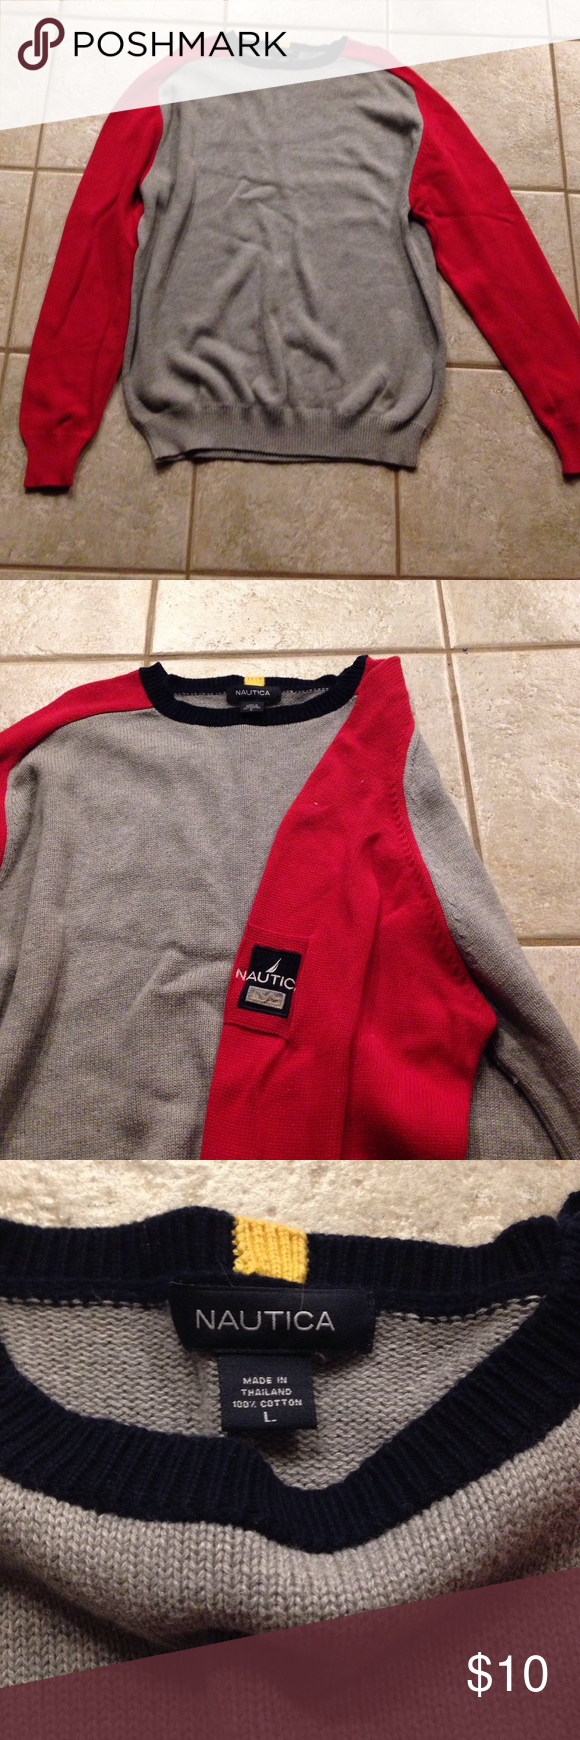 Men's Nautica Sweater Men's Nautica Sweater. 100% cotton. Gray with red sleeves and navy neck. Nautica Sweaters